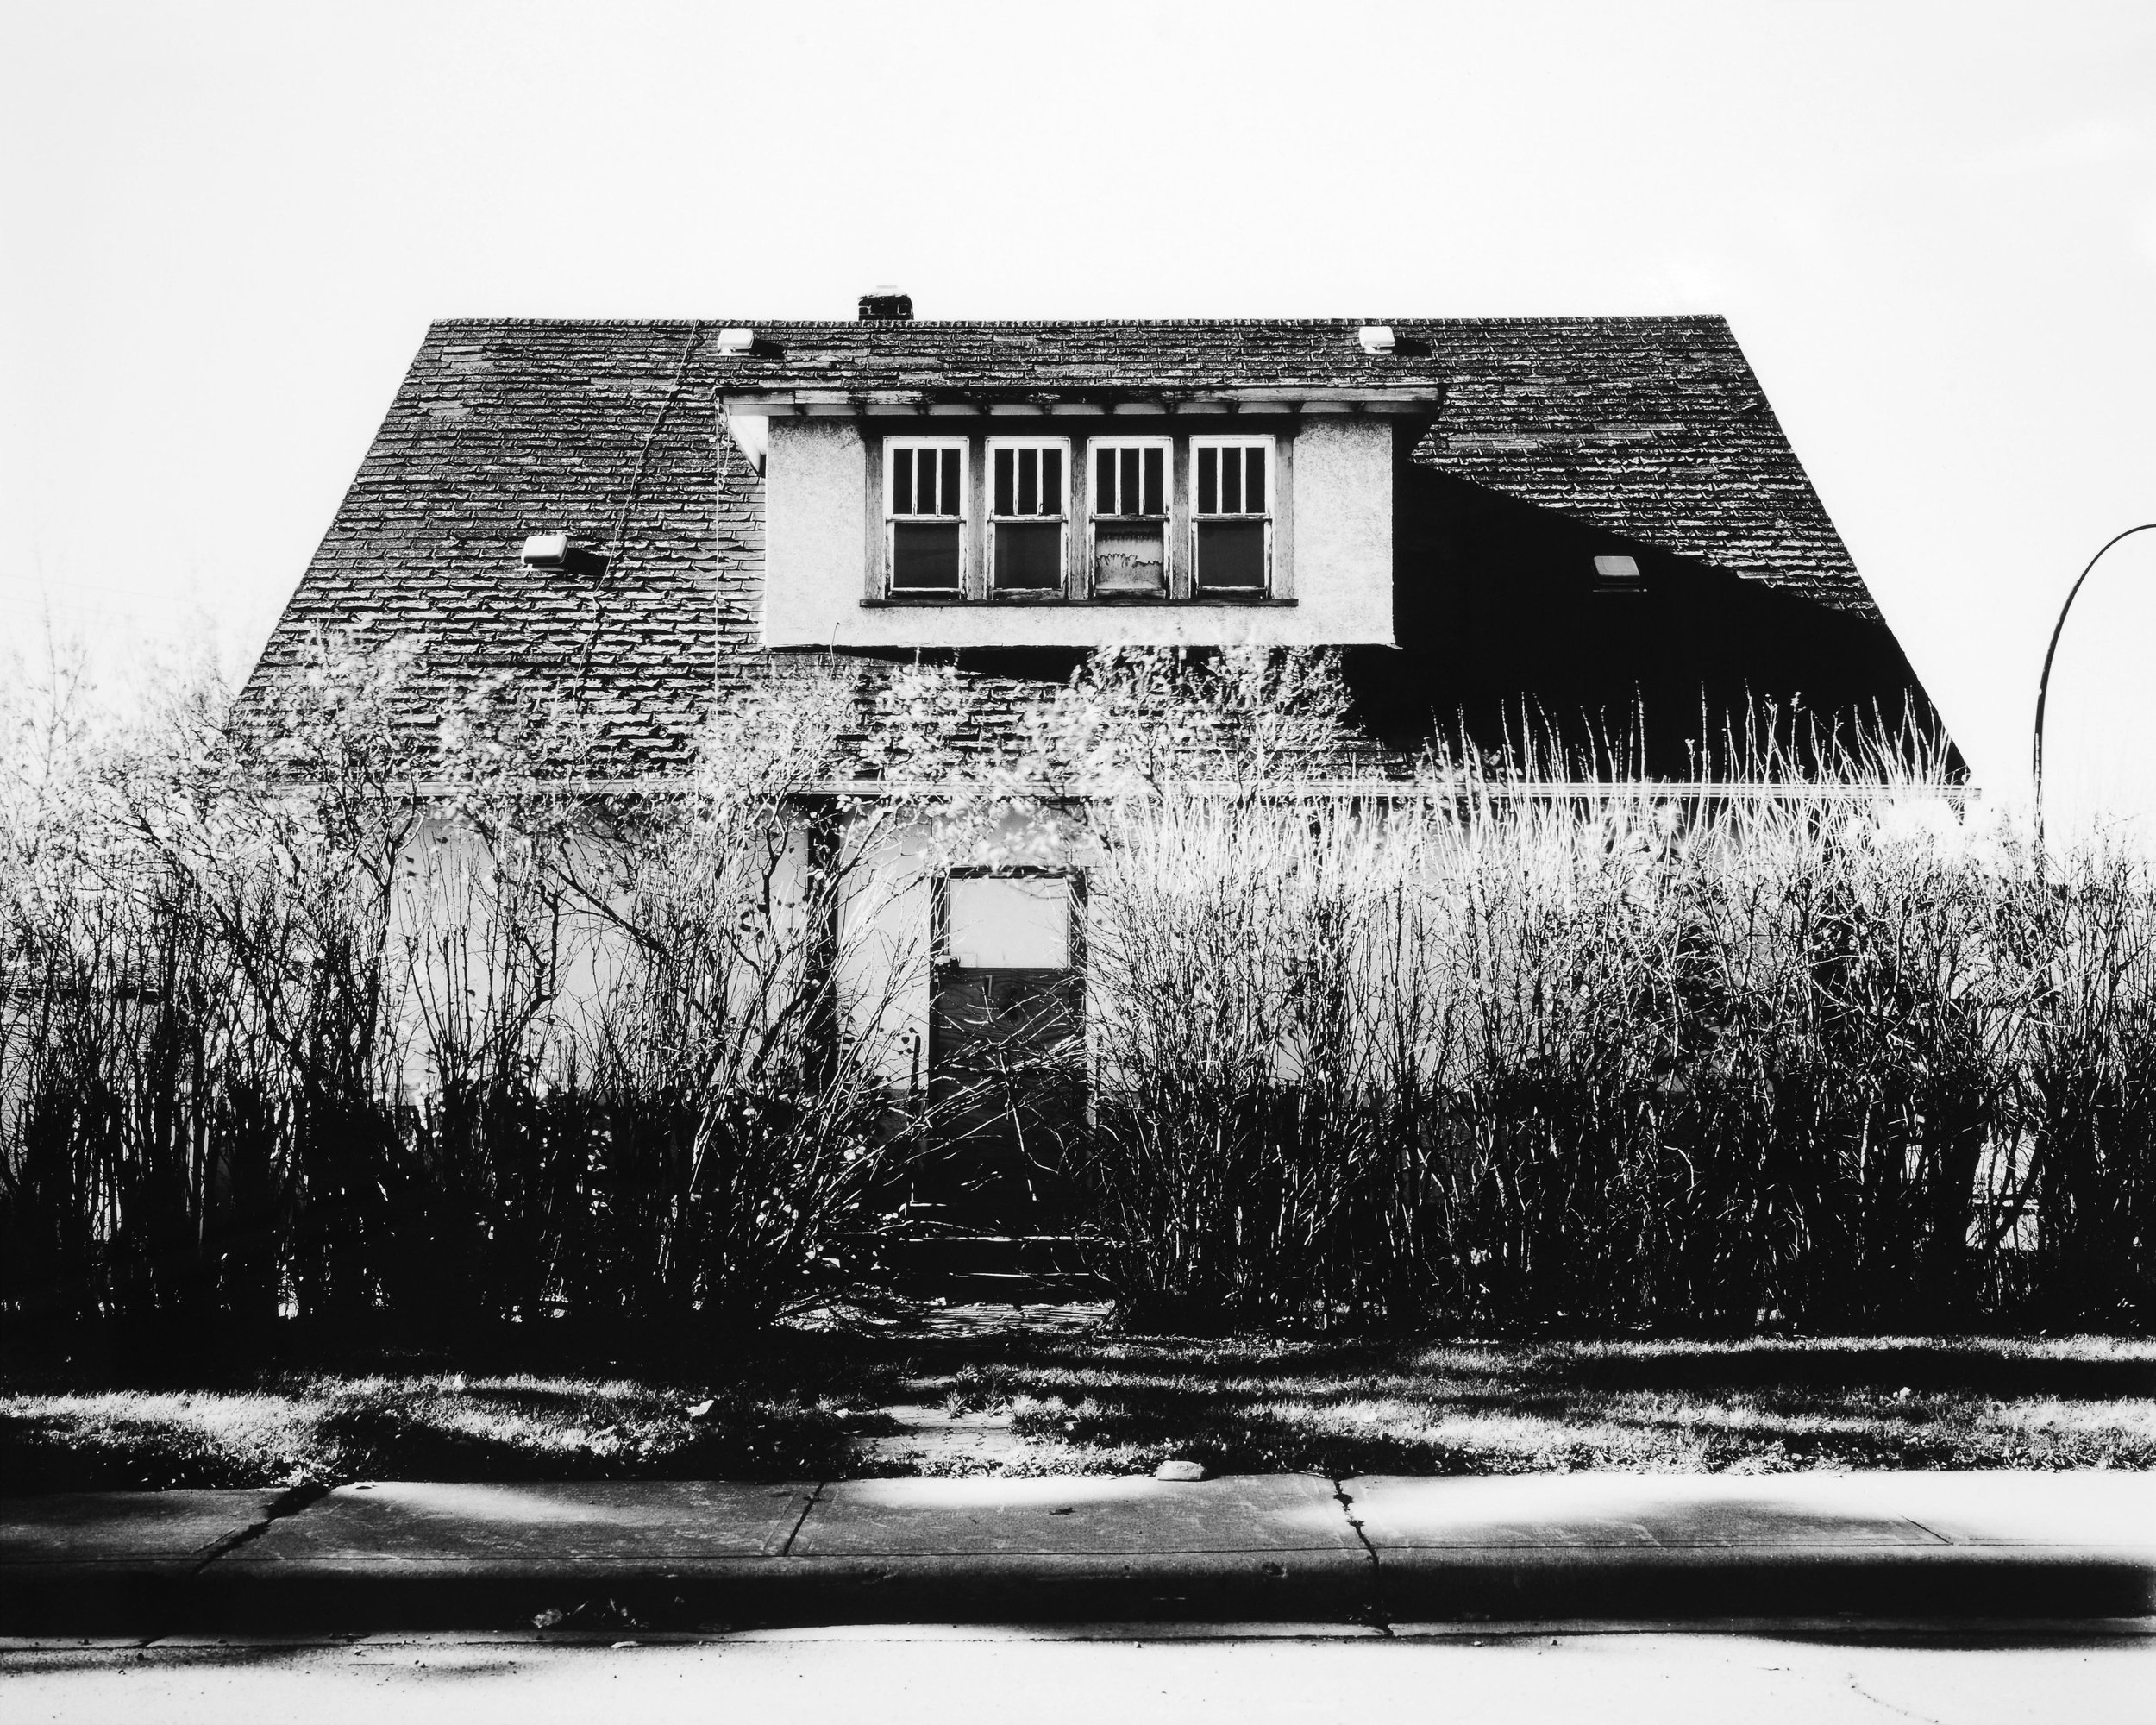 Reproduction - House One - Print - No Border.jpg